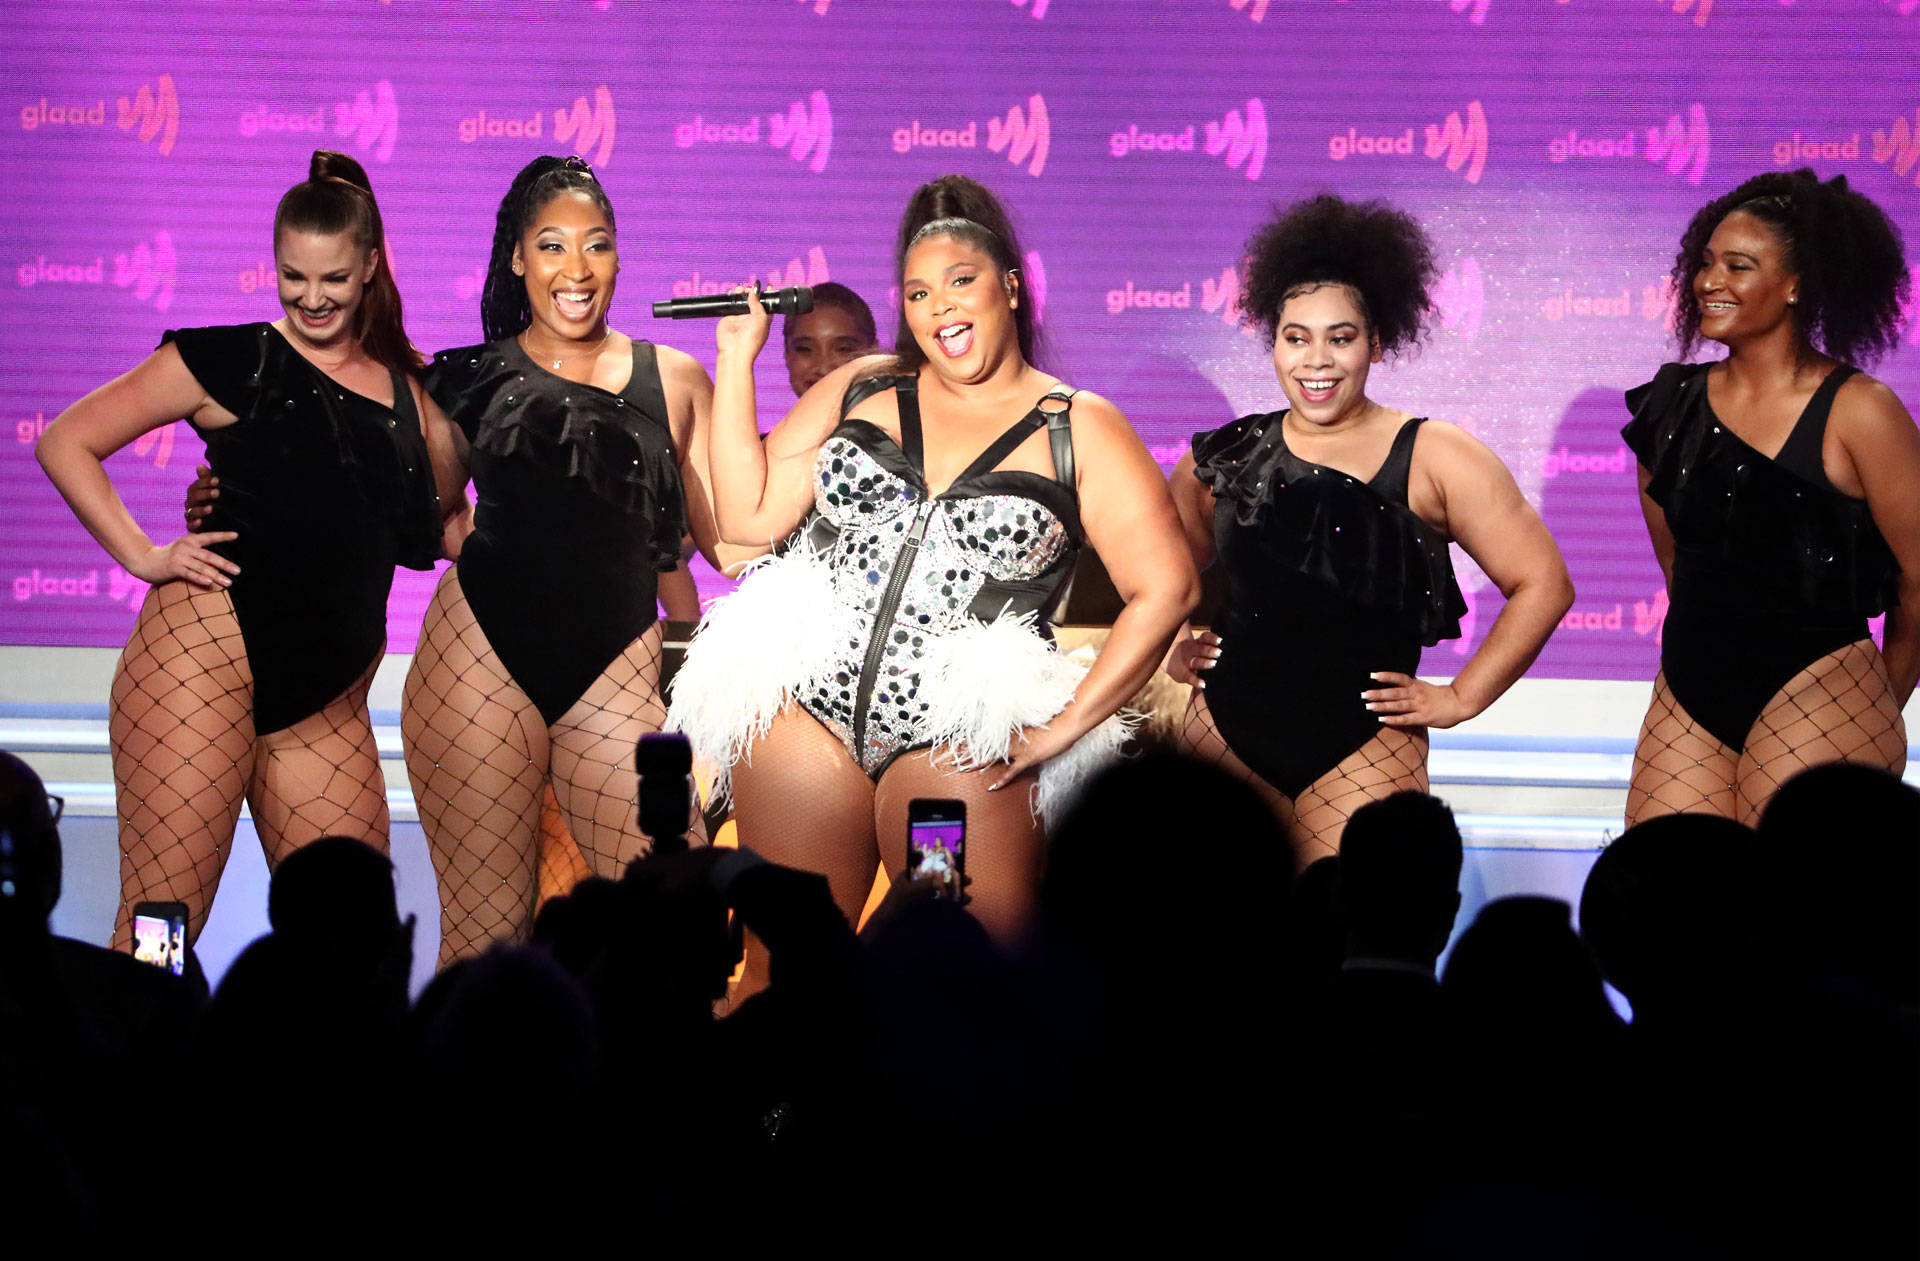 Lizzo performs onstage during the 30th Annual GLAAD Media Awards Los Angeles at The Beverly Hilton Hotel on March 28, 2019 in Beverly Hills, California.  Photo by Rich Fury/Getty Images for GLAAD